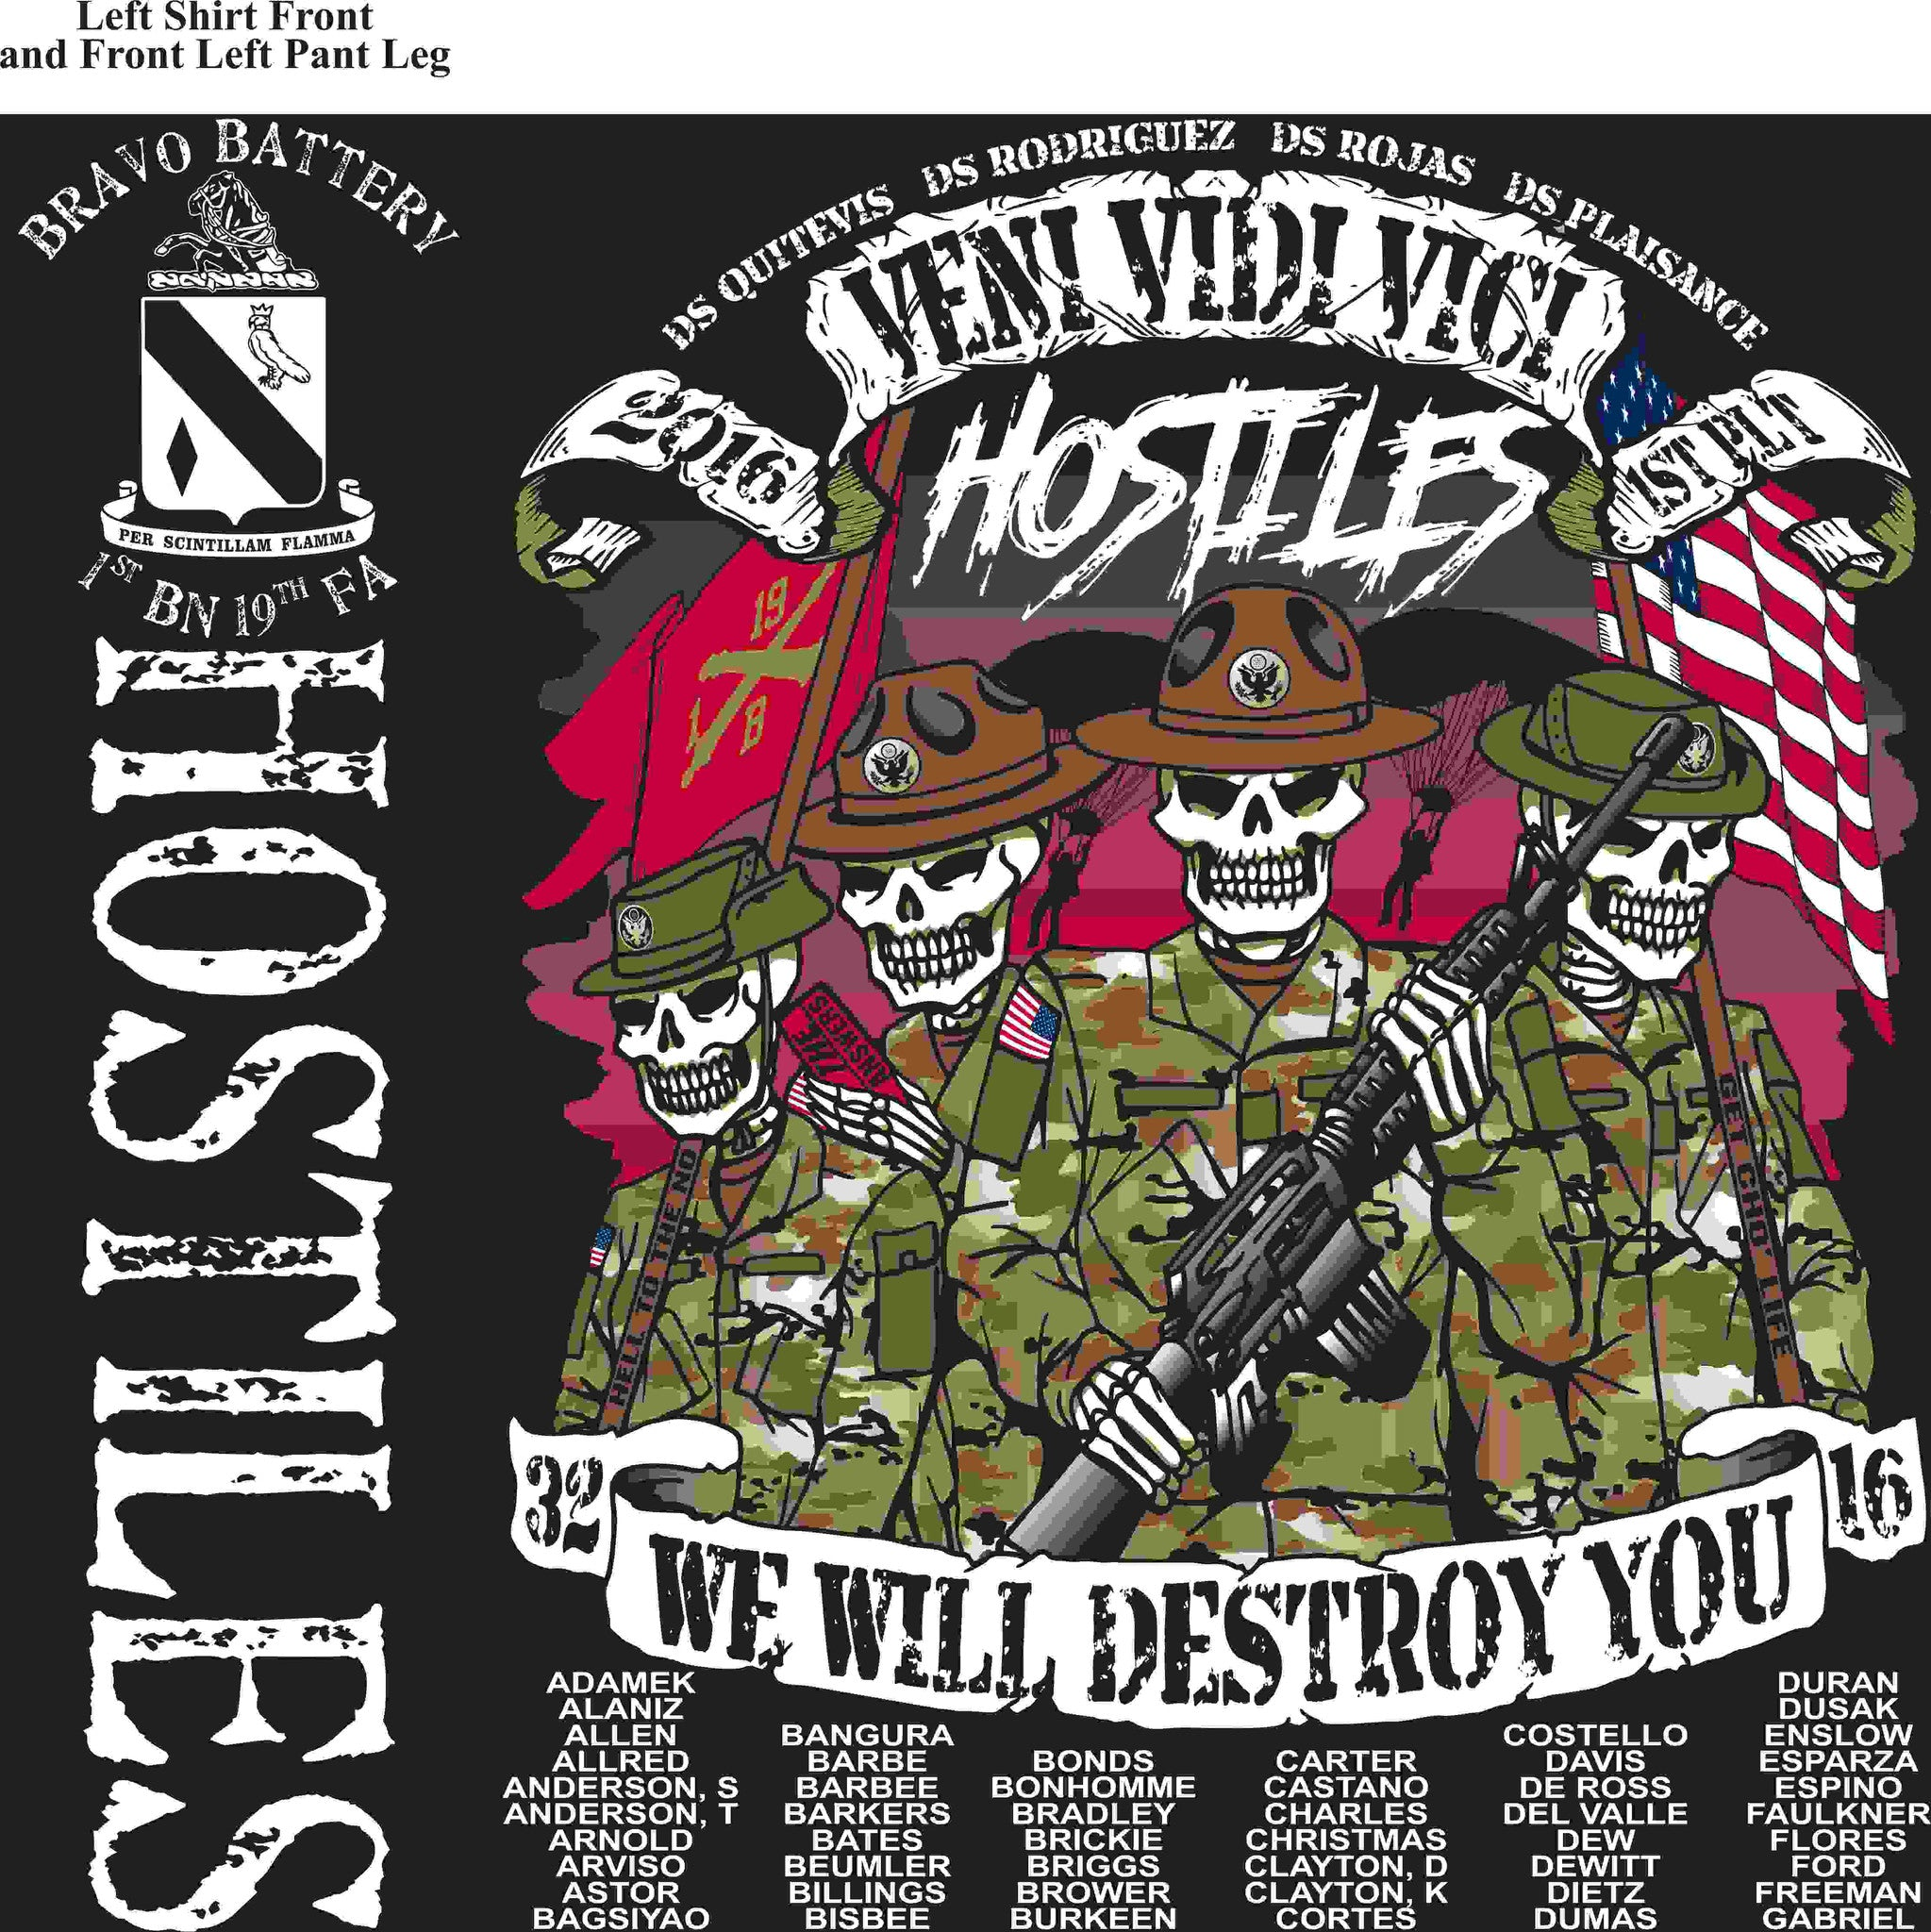 PLATOON SHIRTS (2nd generation print) BRAVO 1st 19th HOSTILES APR 2016